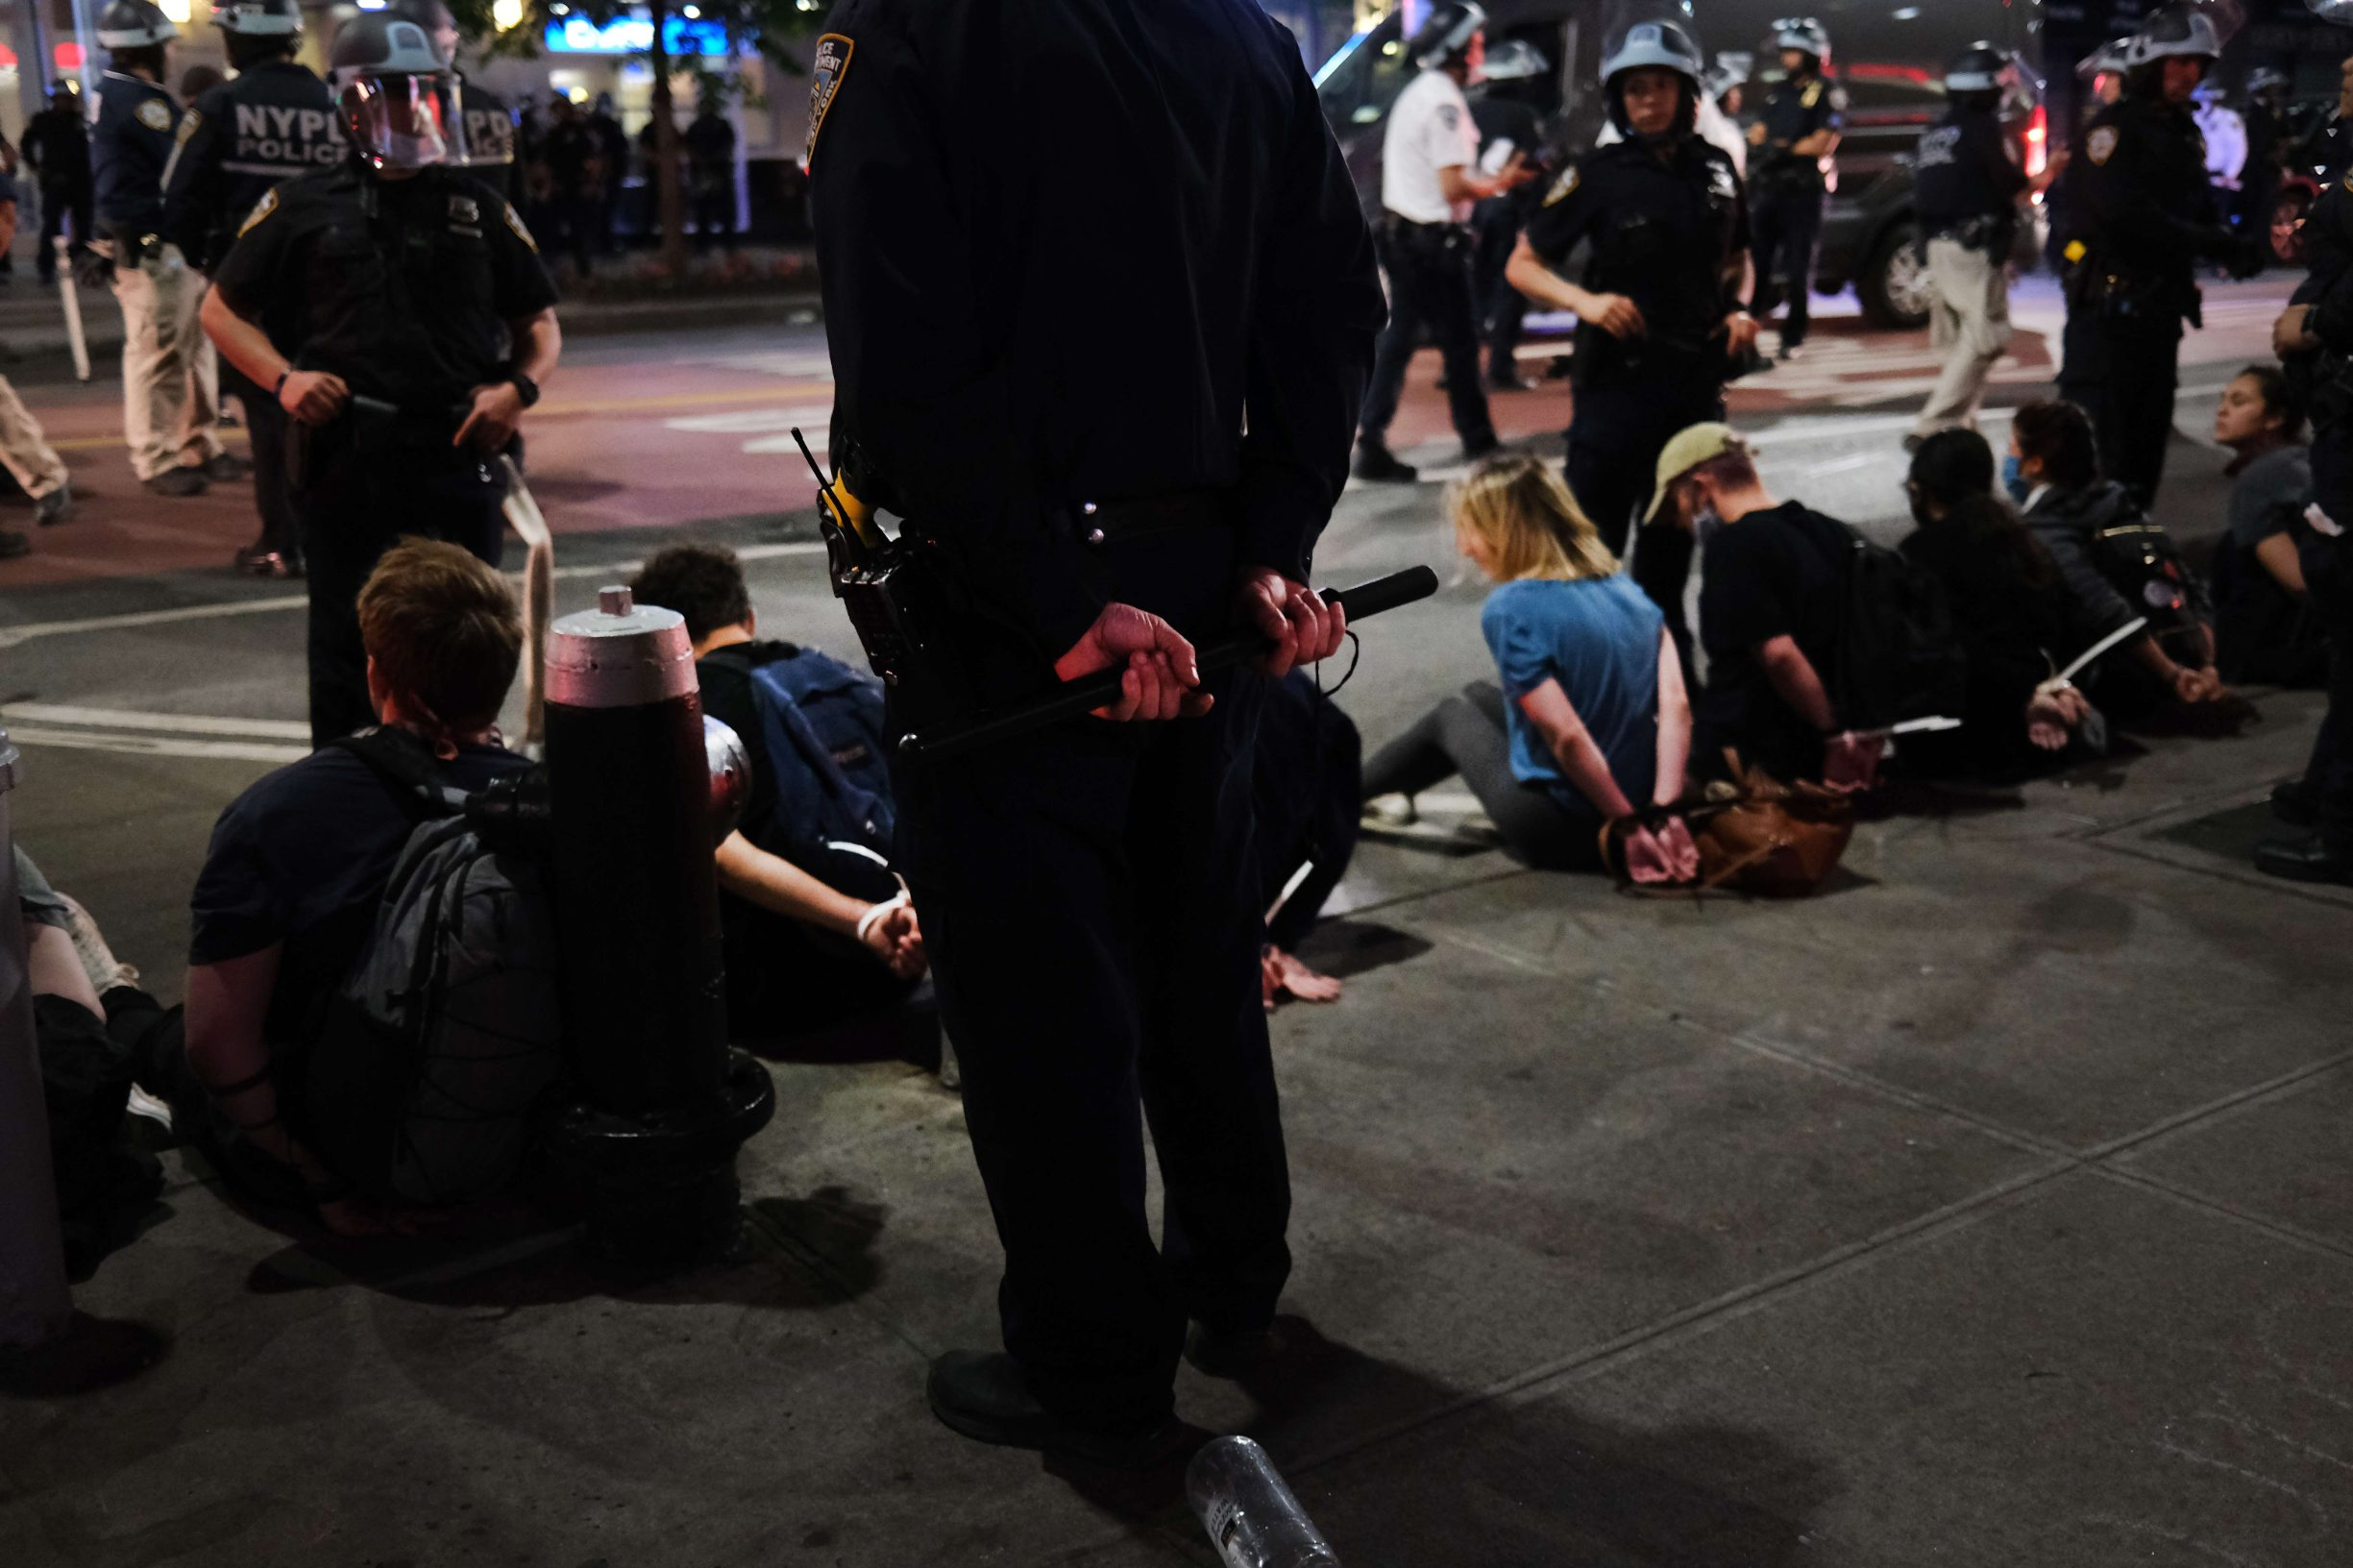 NEW YORK, NEW YORK - JUNE 02: Protesters and others are arrested on a night where thousands of demonstrators again took to the streets of Manhattan to show anger at the police killing of George Floyd on June 02, 2020 in New York City. The Minneapolis Police officer ,Derek Chauvin, who was filmed kneeling on George Floyd's neck before he died has been arrsted. Floyd's death, the most recent in a series of deaths of black Americans while in police custody, has set off days and nights of protests across the country.   Spencer Platt/Getty Images/AFP == FOR NEWSPAPERS, INTERNET, TELCOS & TELEVISION USE ONLY ==